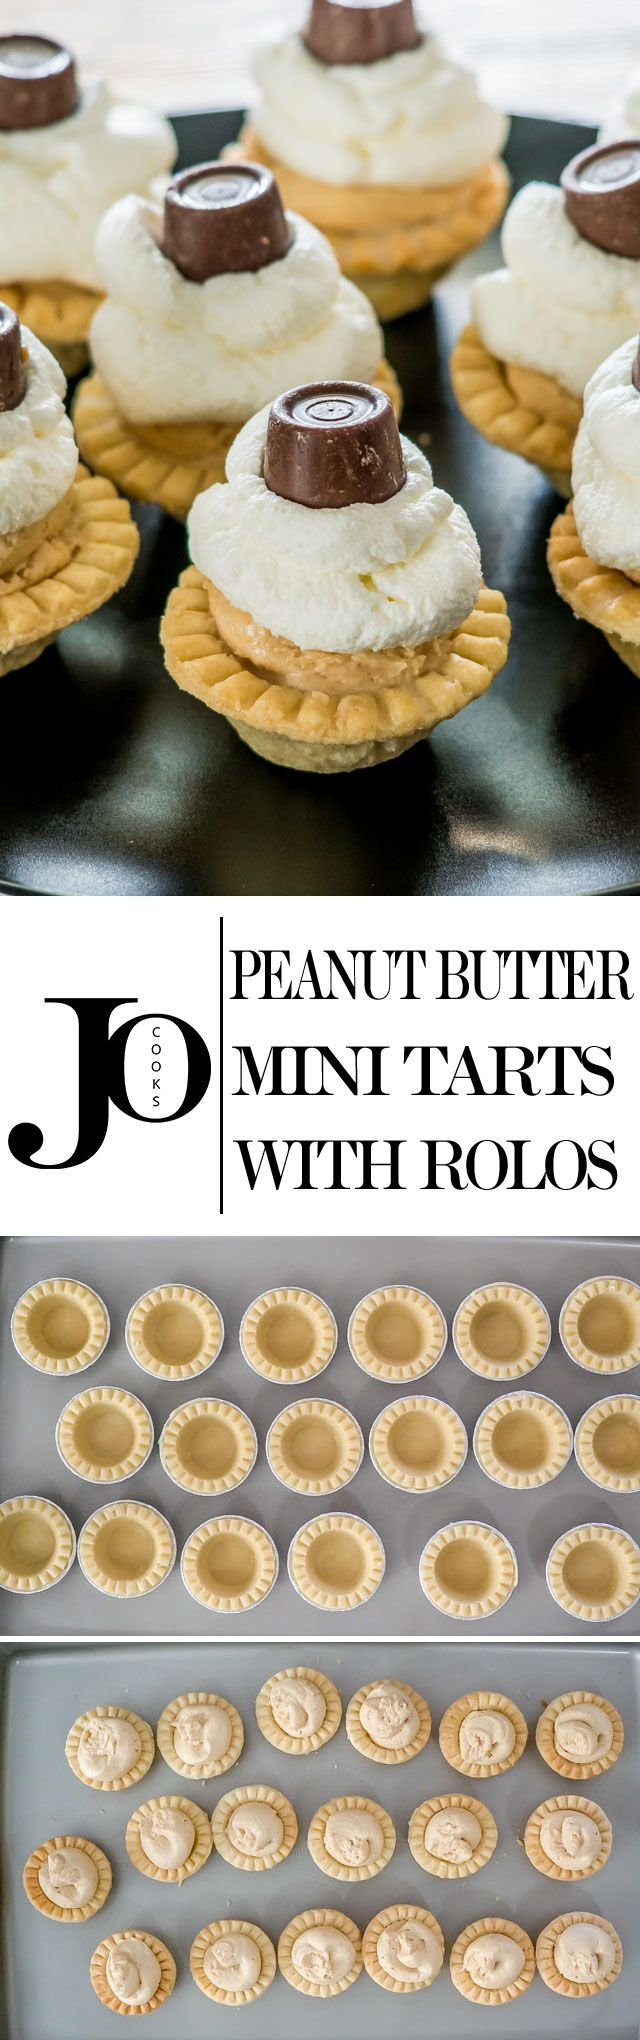 When peanut butter, cream cheese, flaky tart shells, rolos and creamy goodness coincide, you're going to smile from ear to ear! These indulgent little bites make for the perfect dessert!